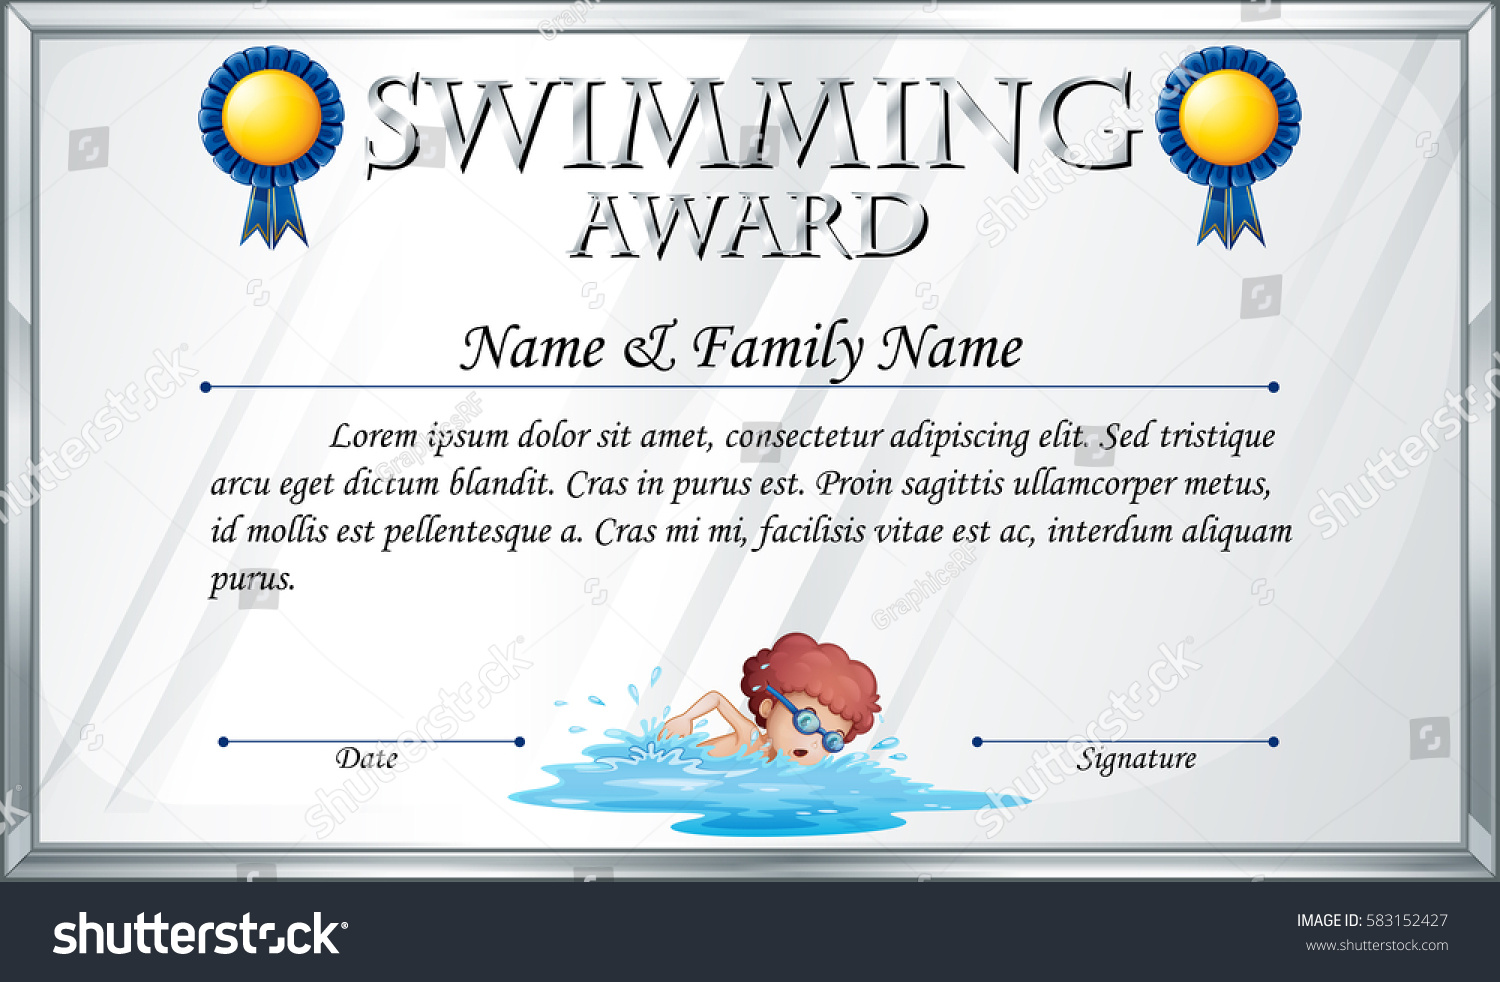 Certificate template swimming award illustration stock vector certificate template for swimming award illustration xflitez Gallery